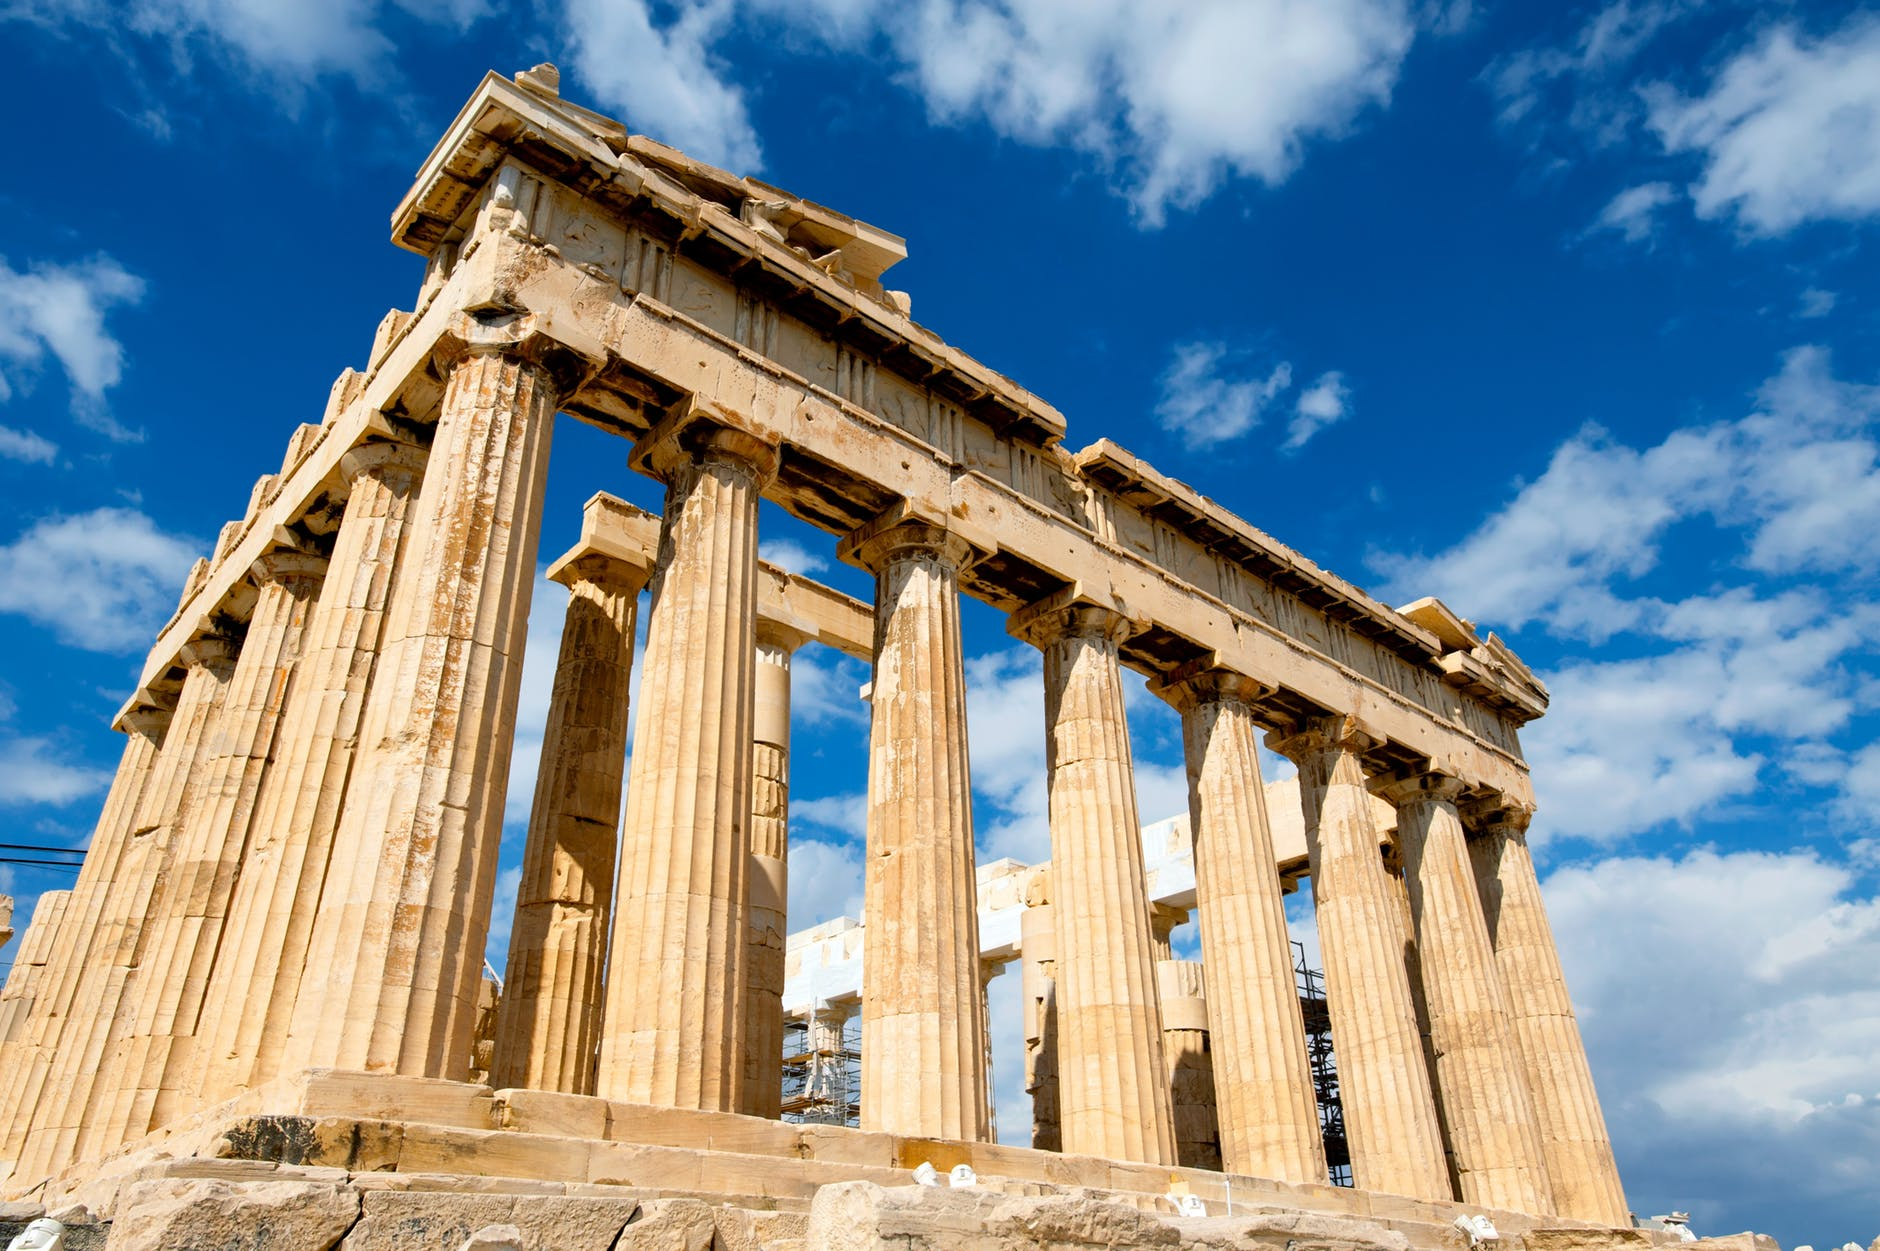 low angle photograph of the parthenon during daytime